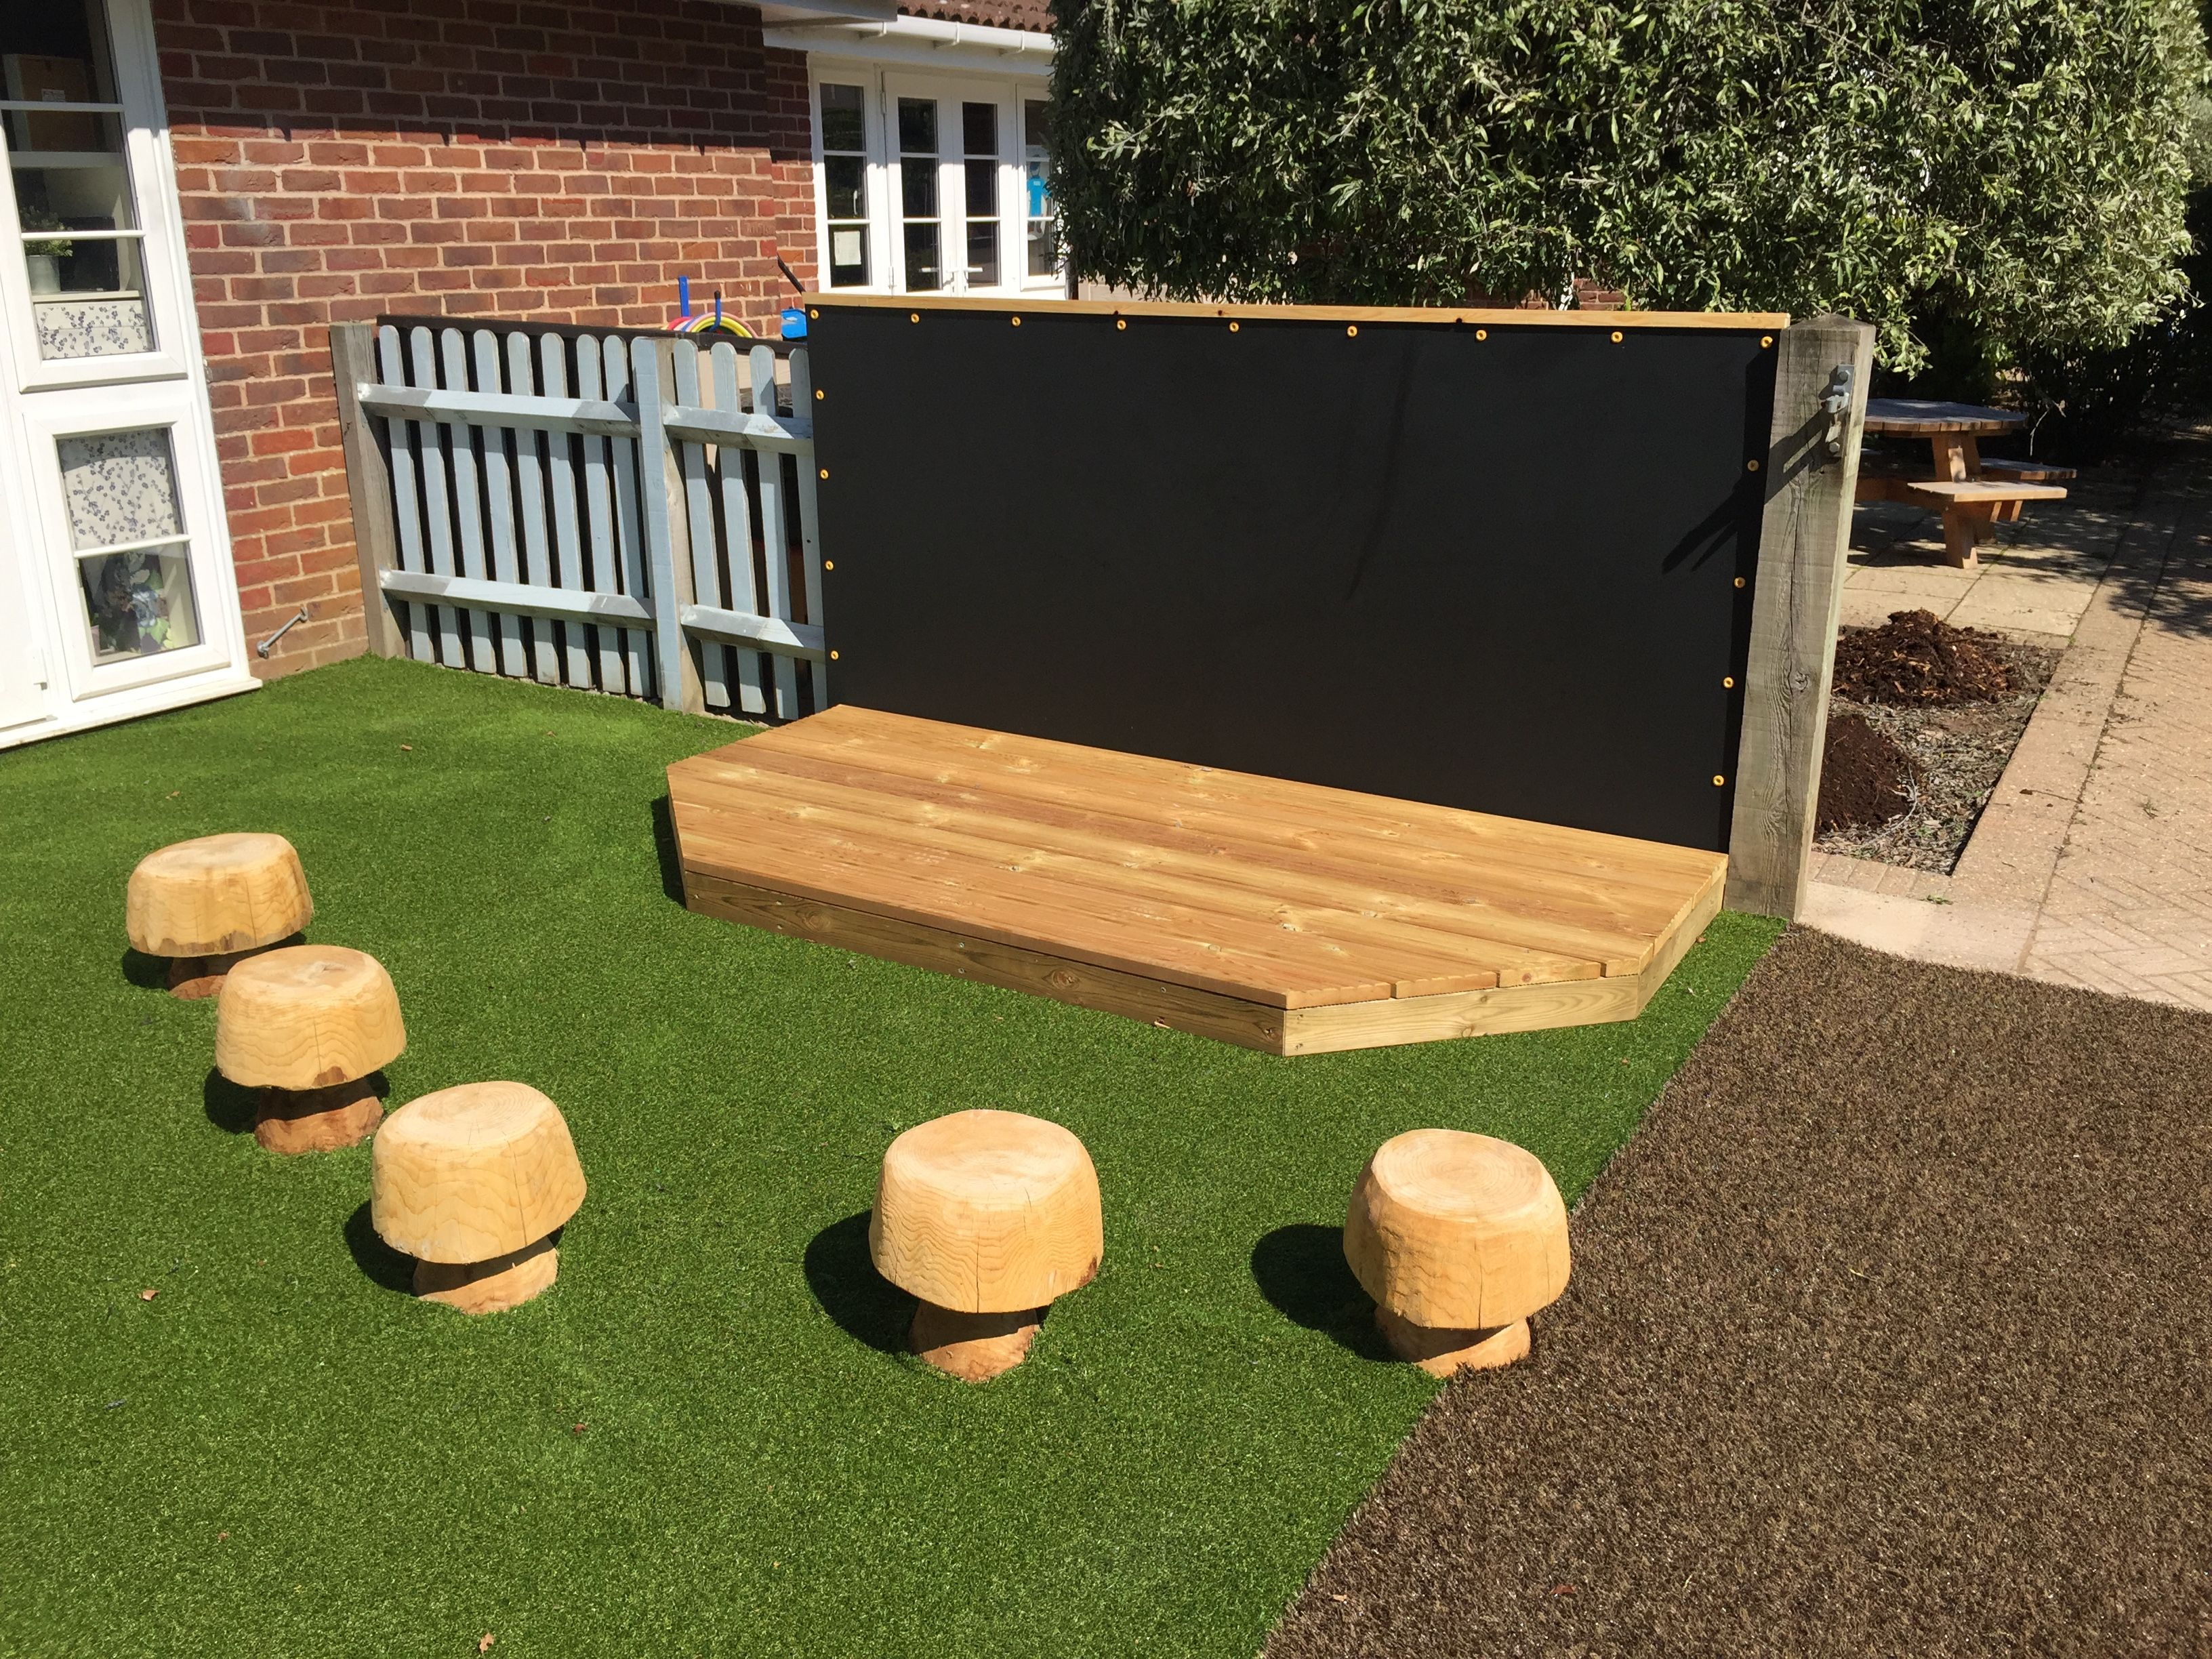 Playground Stage and Seating - Chalkboard Backdrop ...